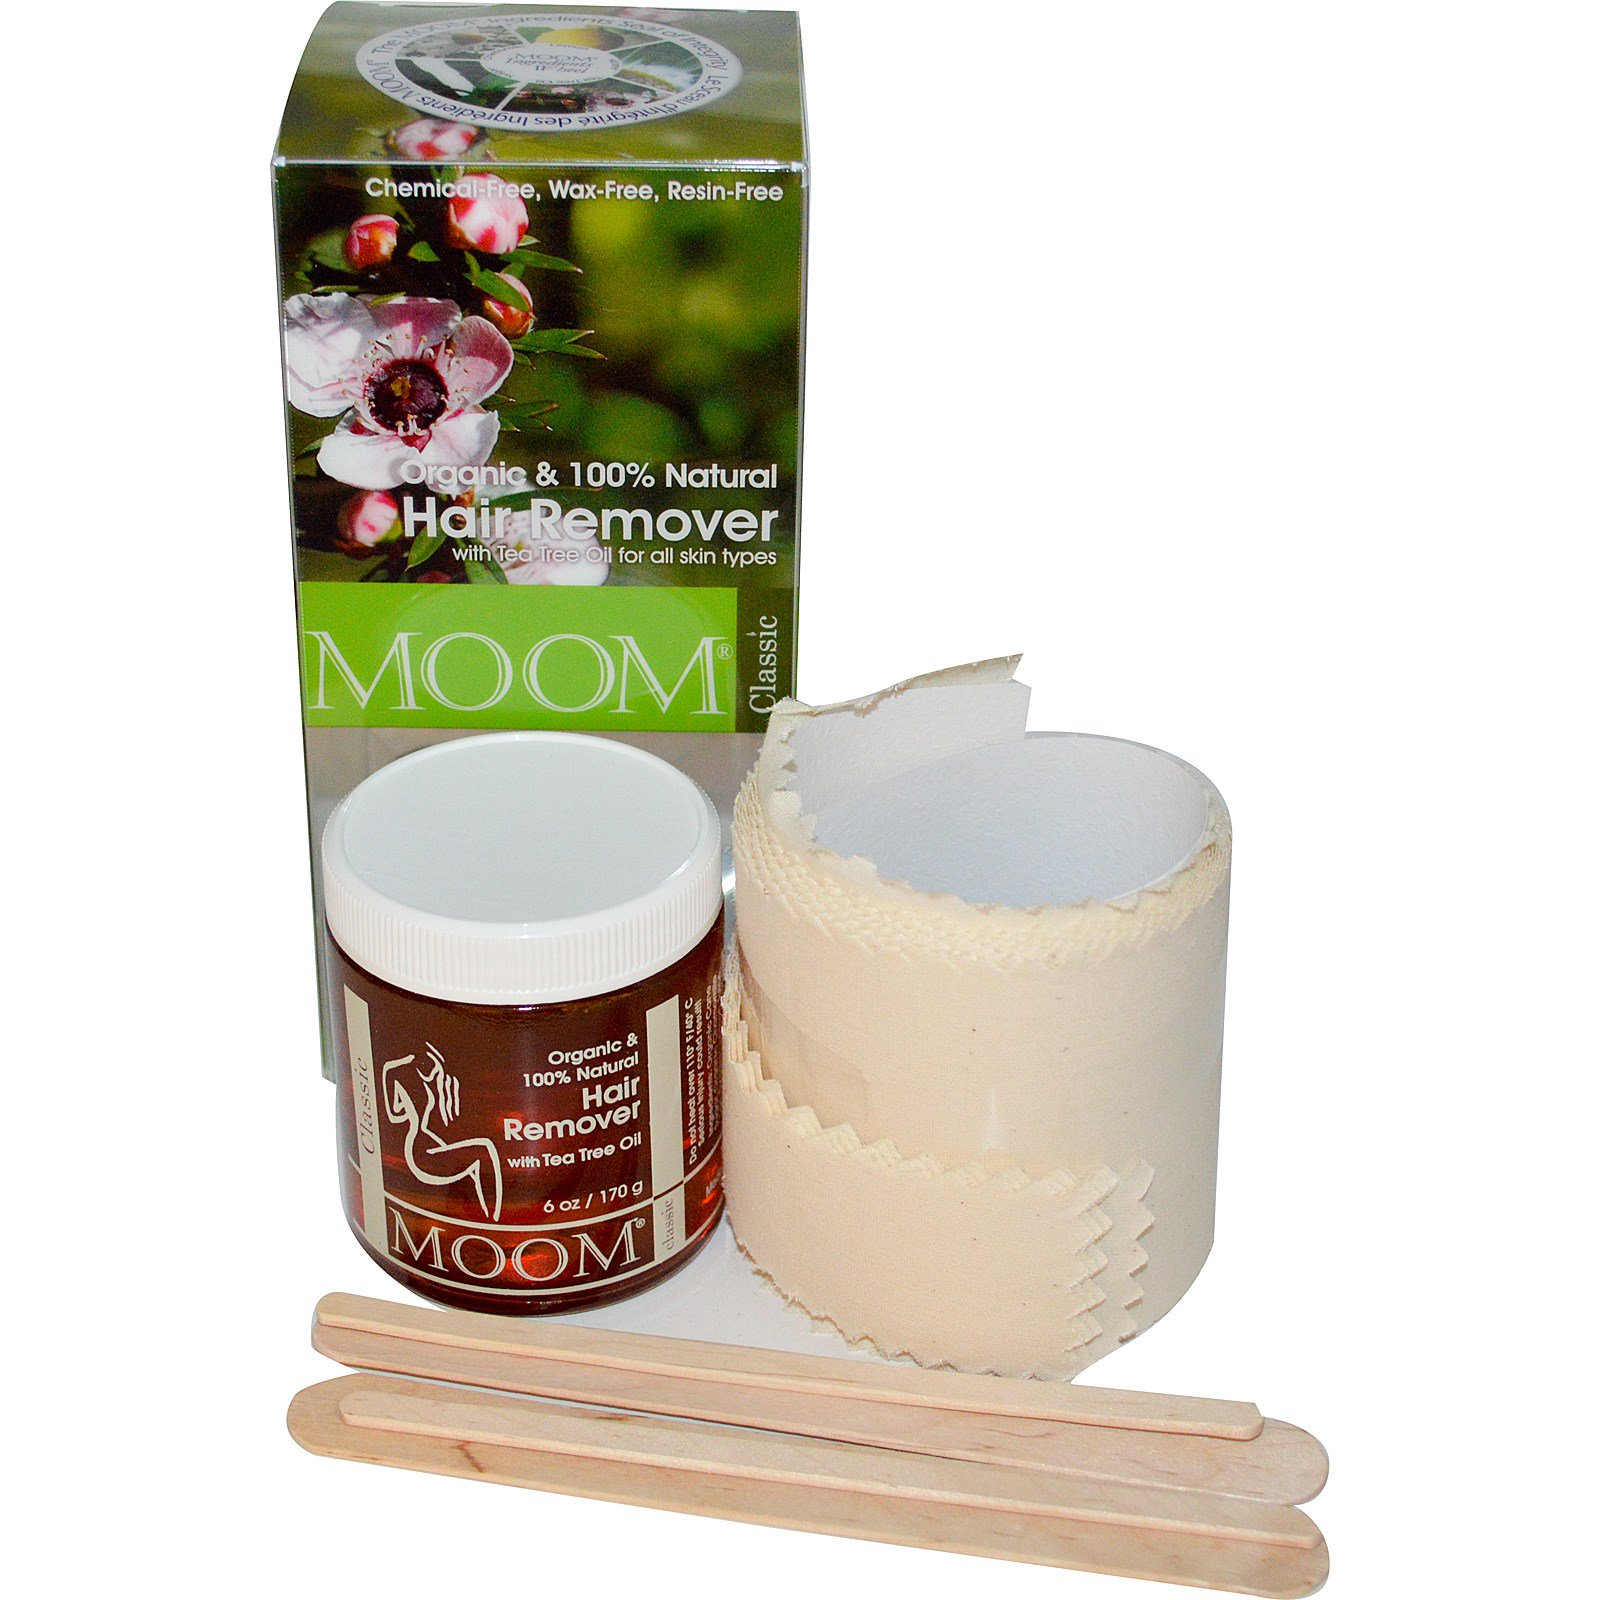 Moom Organic Hair Remover With TeaTree Oil